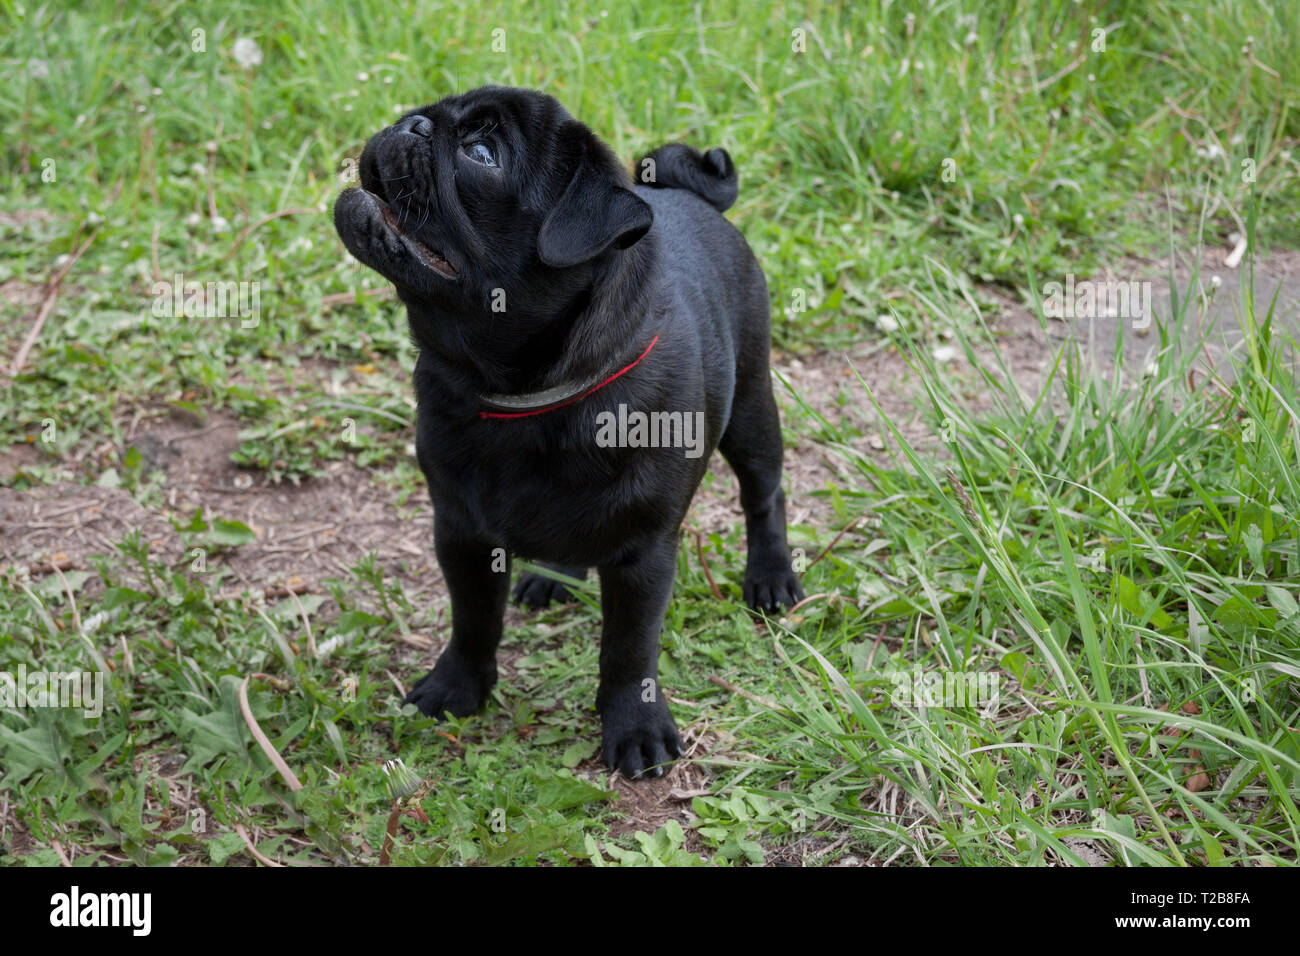 Black chinese pug puppy is standing on a spring meadow. Dutch mastiff or mops. Pet animals. Purebred dog. - Stock Image